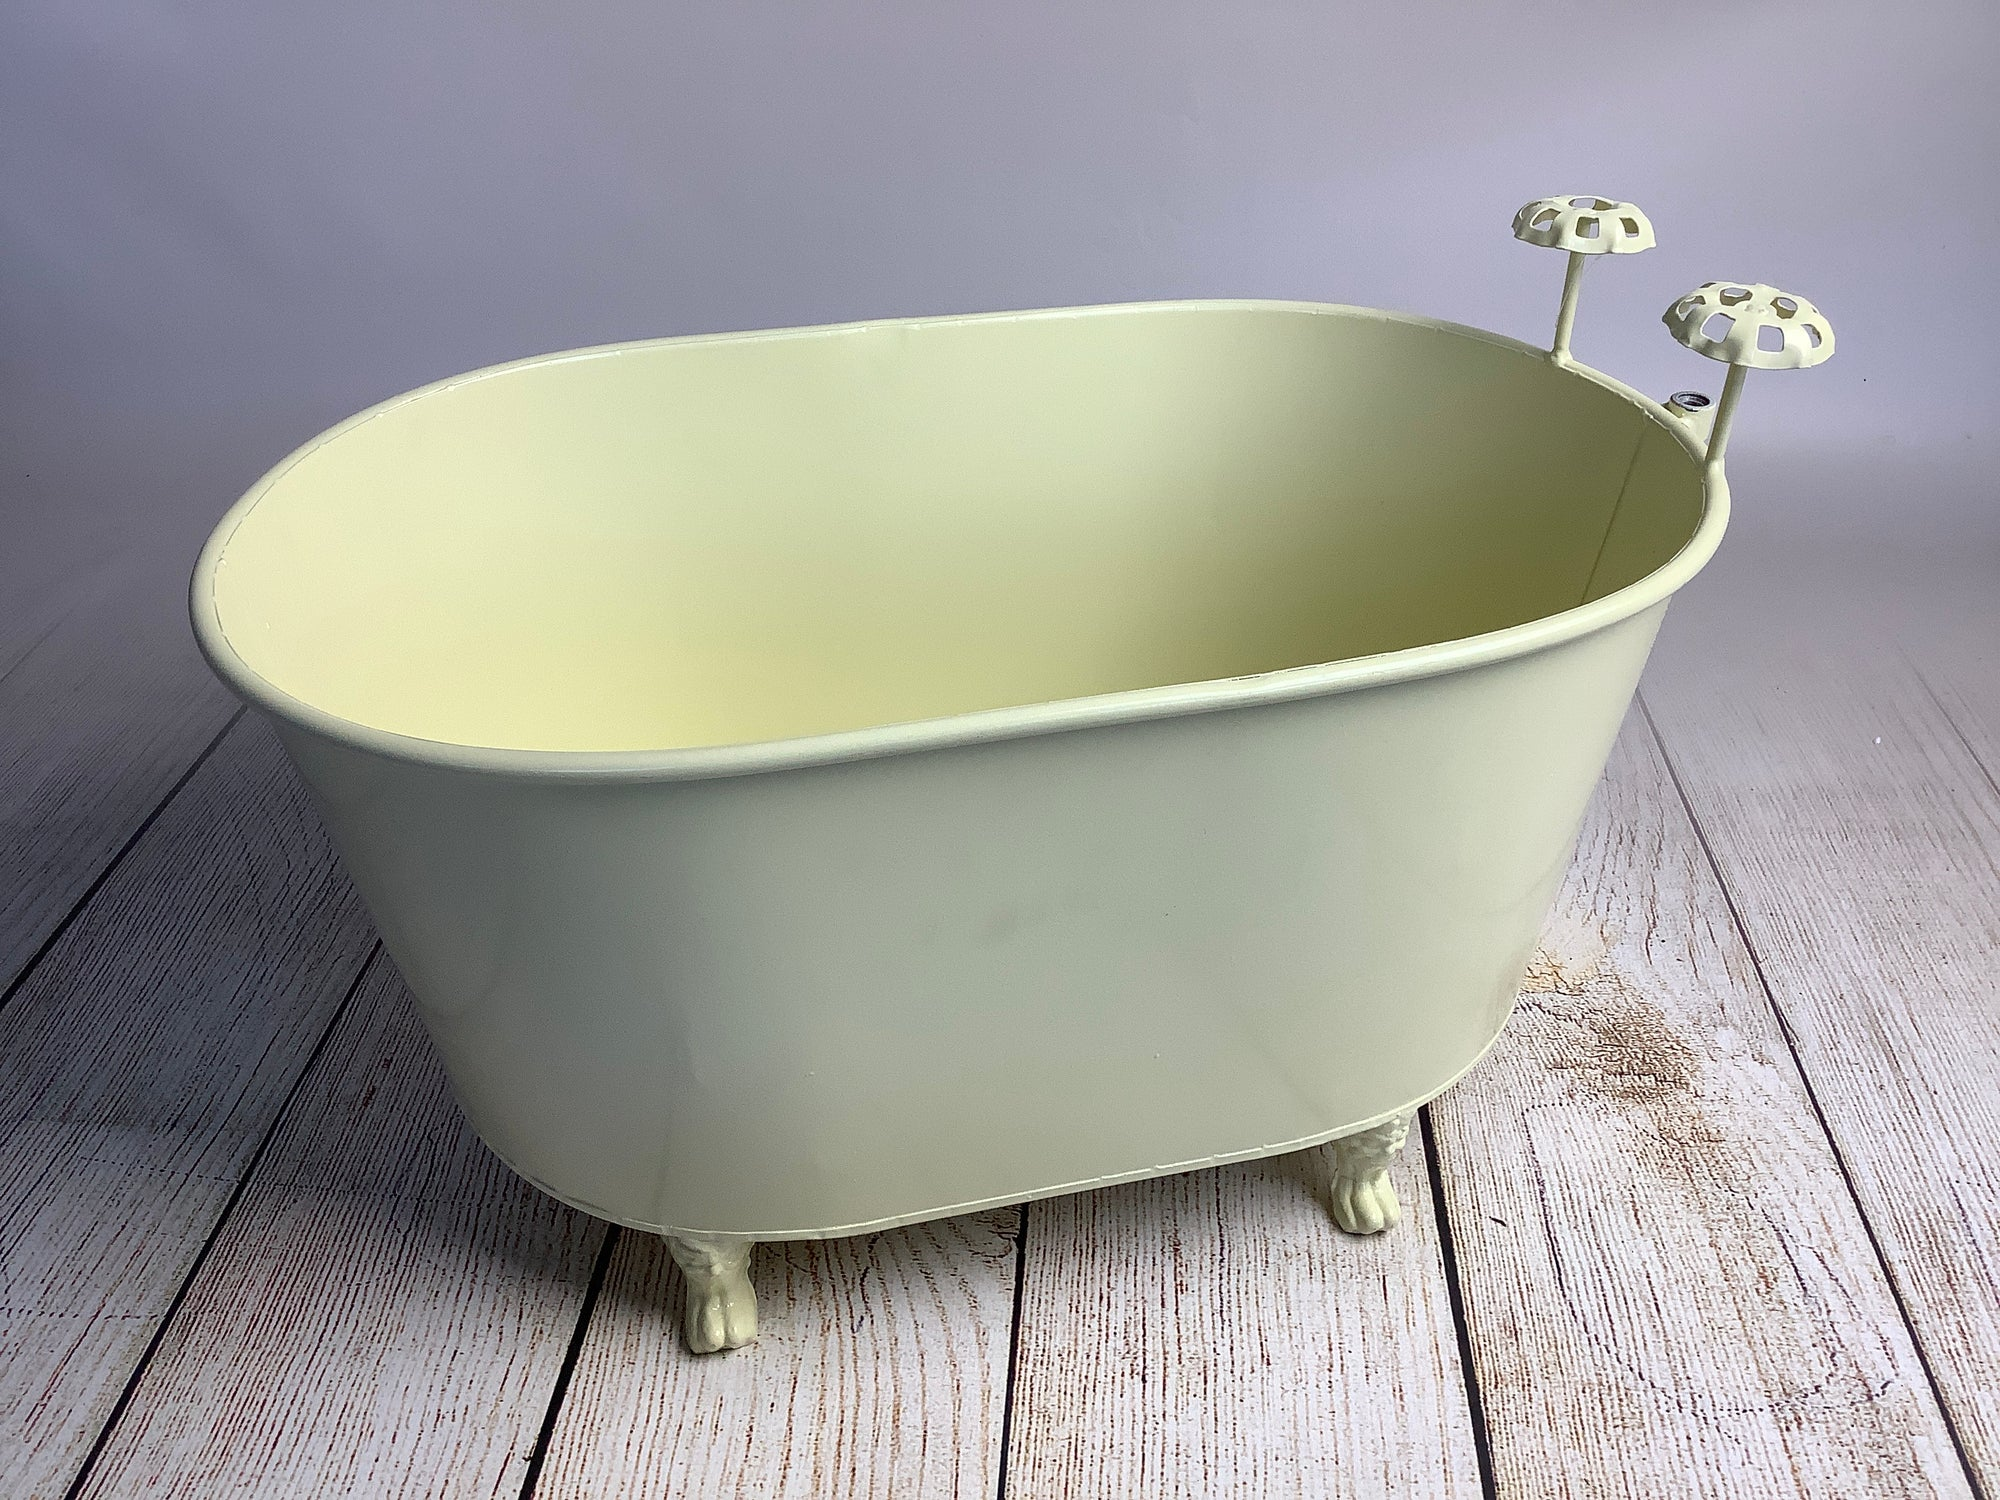 Footed Vintage Bathtub with Gooseneck Faucet - Light Beige (AS IS ITEM)